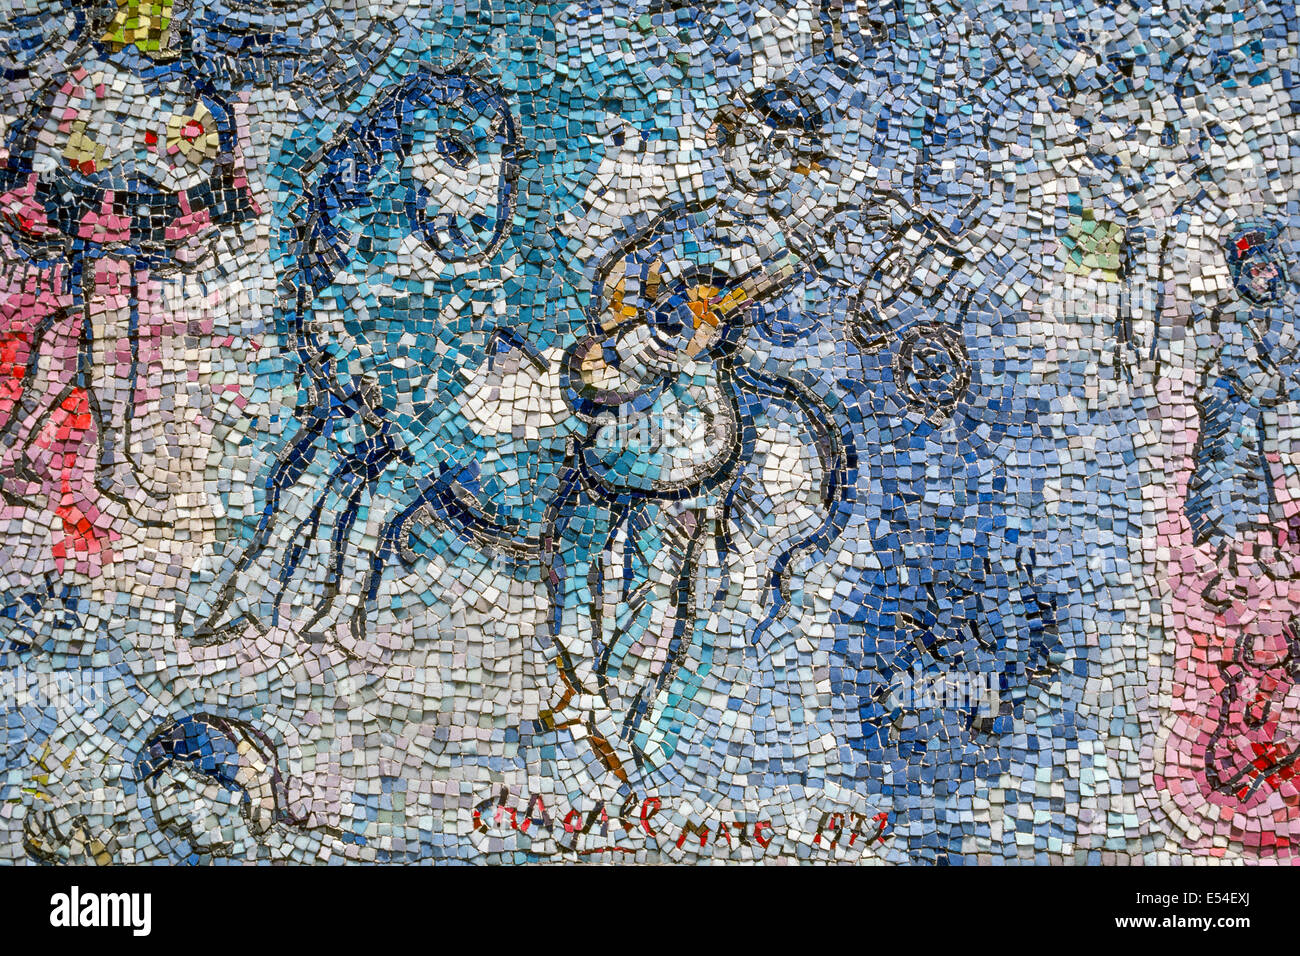 'The Four Seasons' mosaic by French artist Marc Chagall is one of the most monumental works of outdoor public - Stock Image